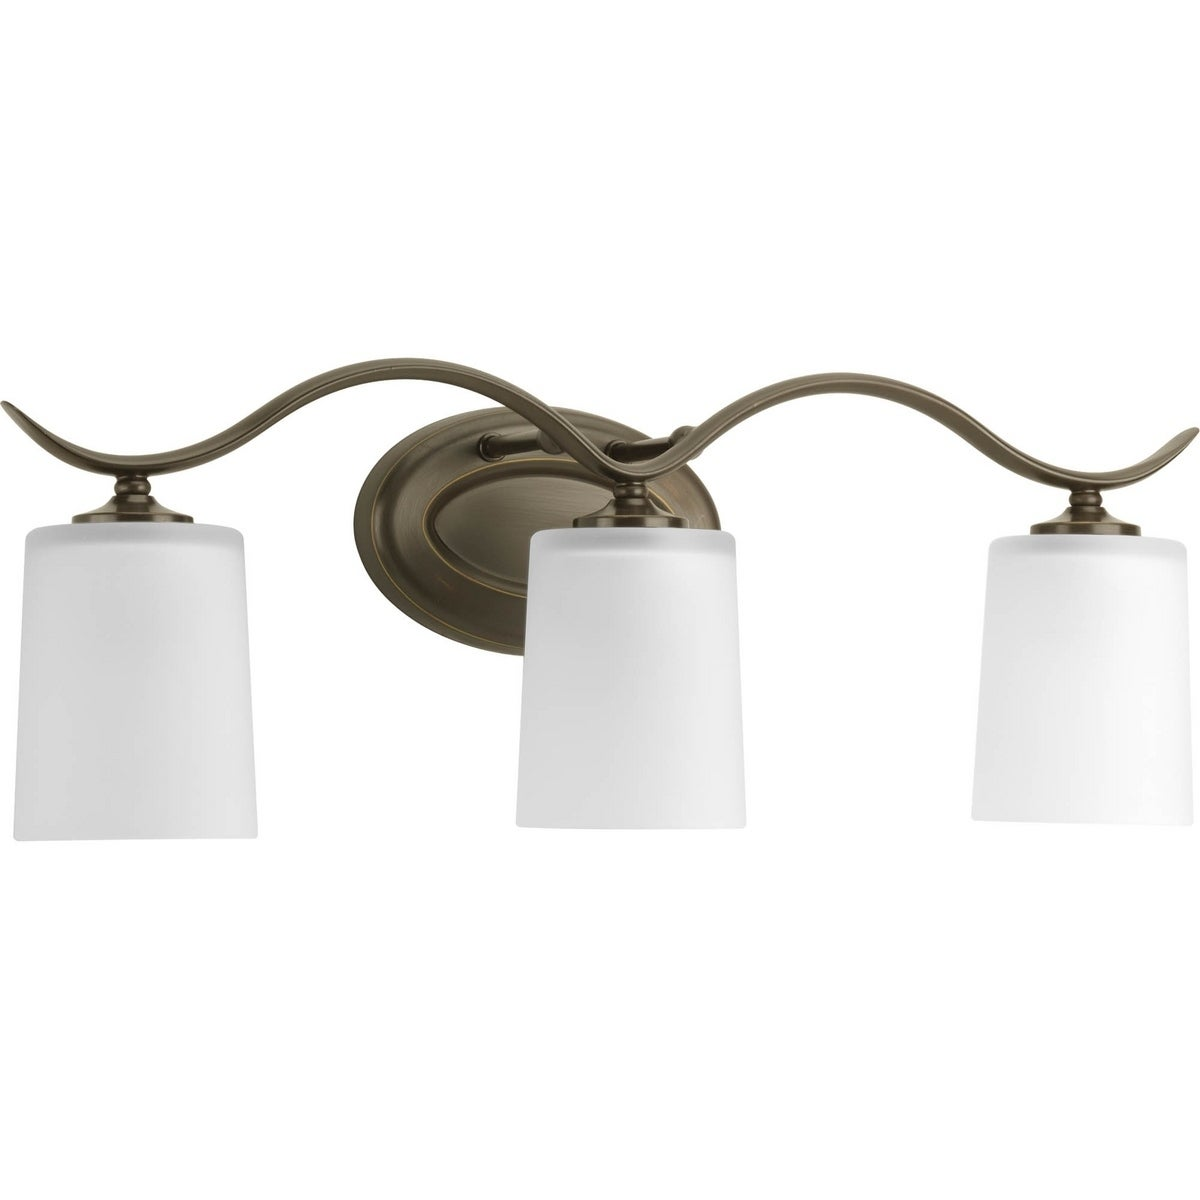 Inspire Collection 3 Light Antique